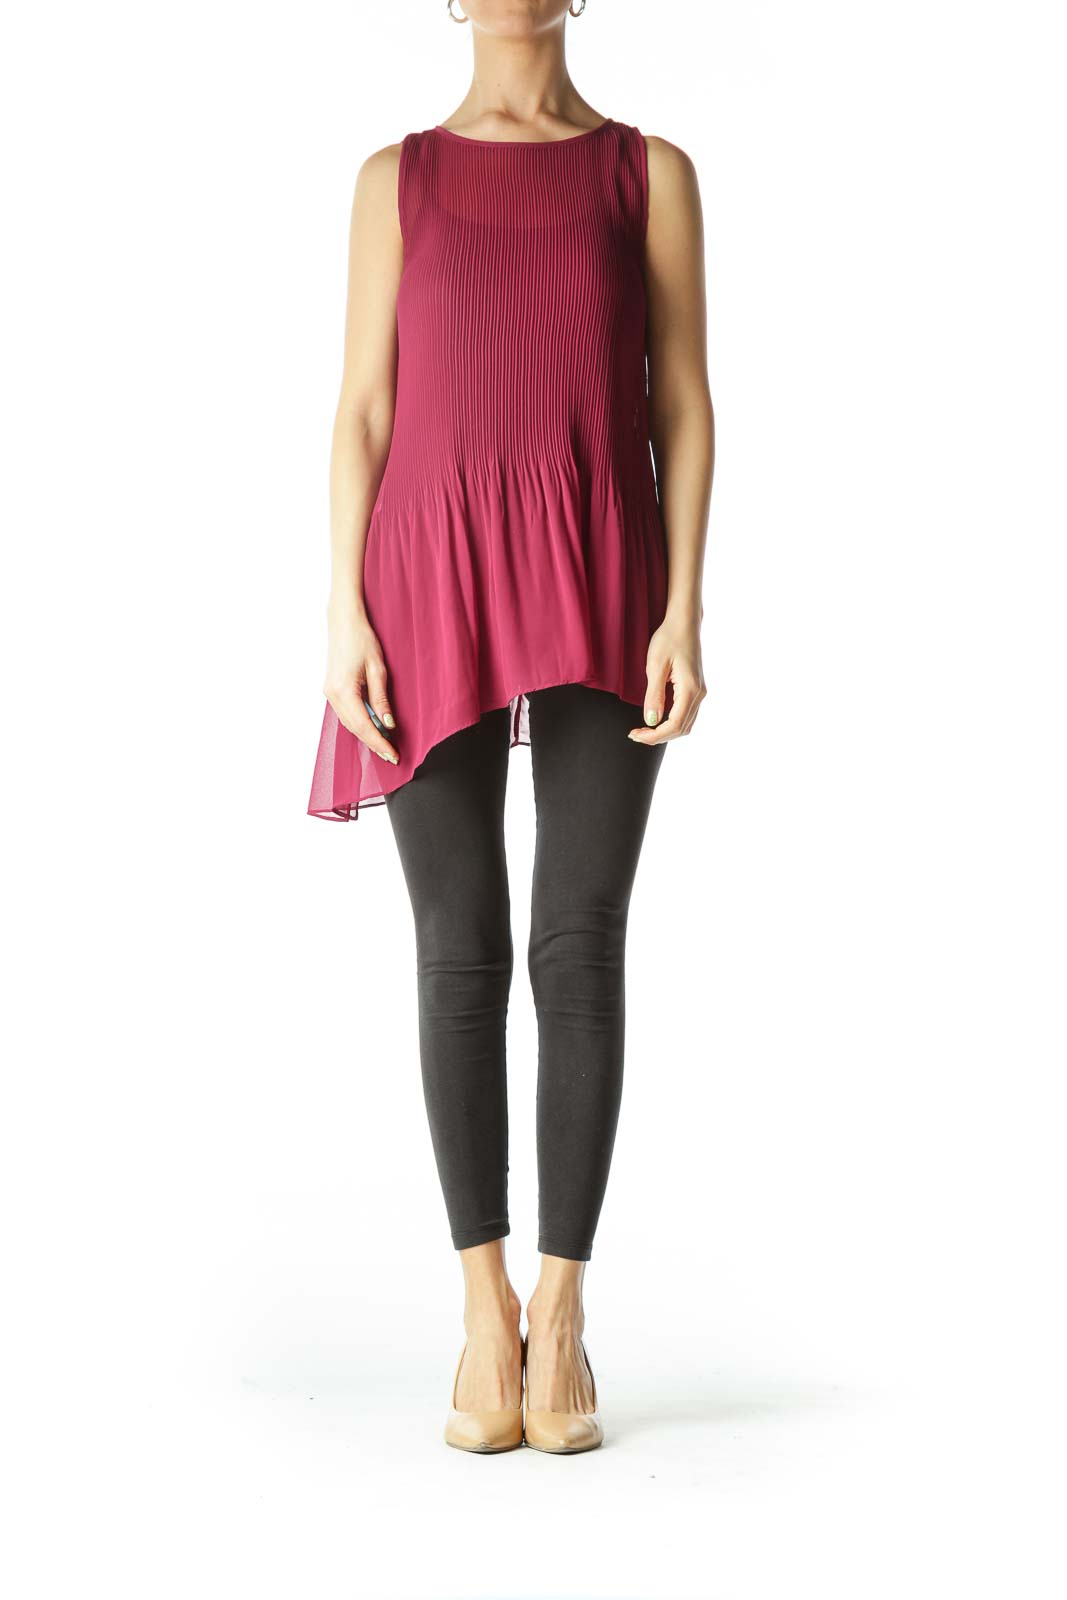 Burgundy See-Through Pleated Flared Top